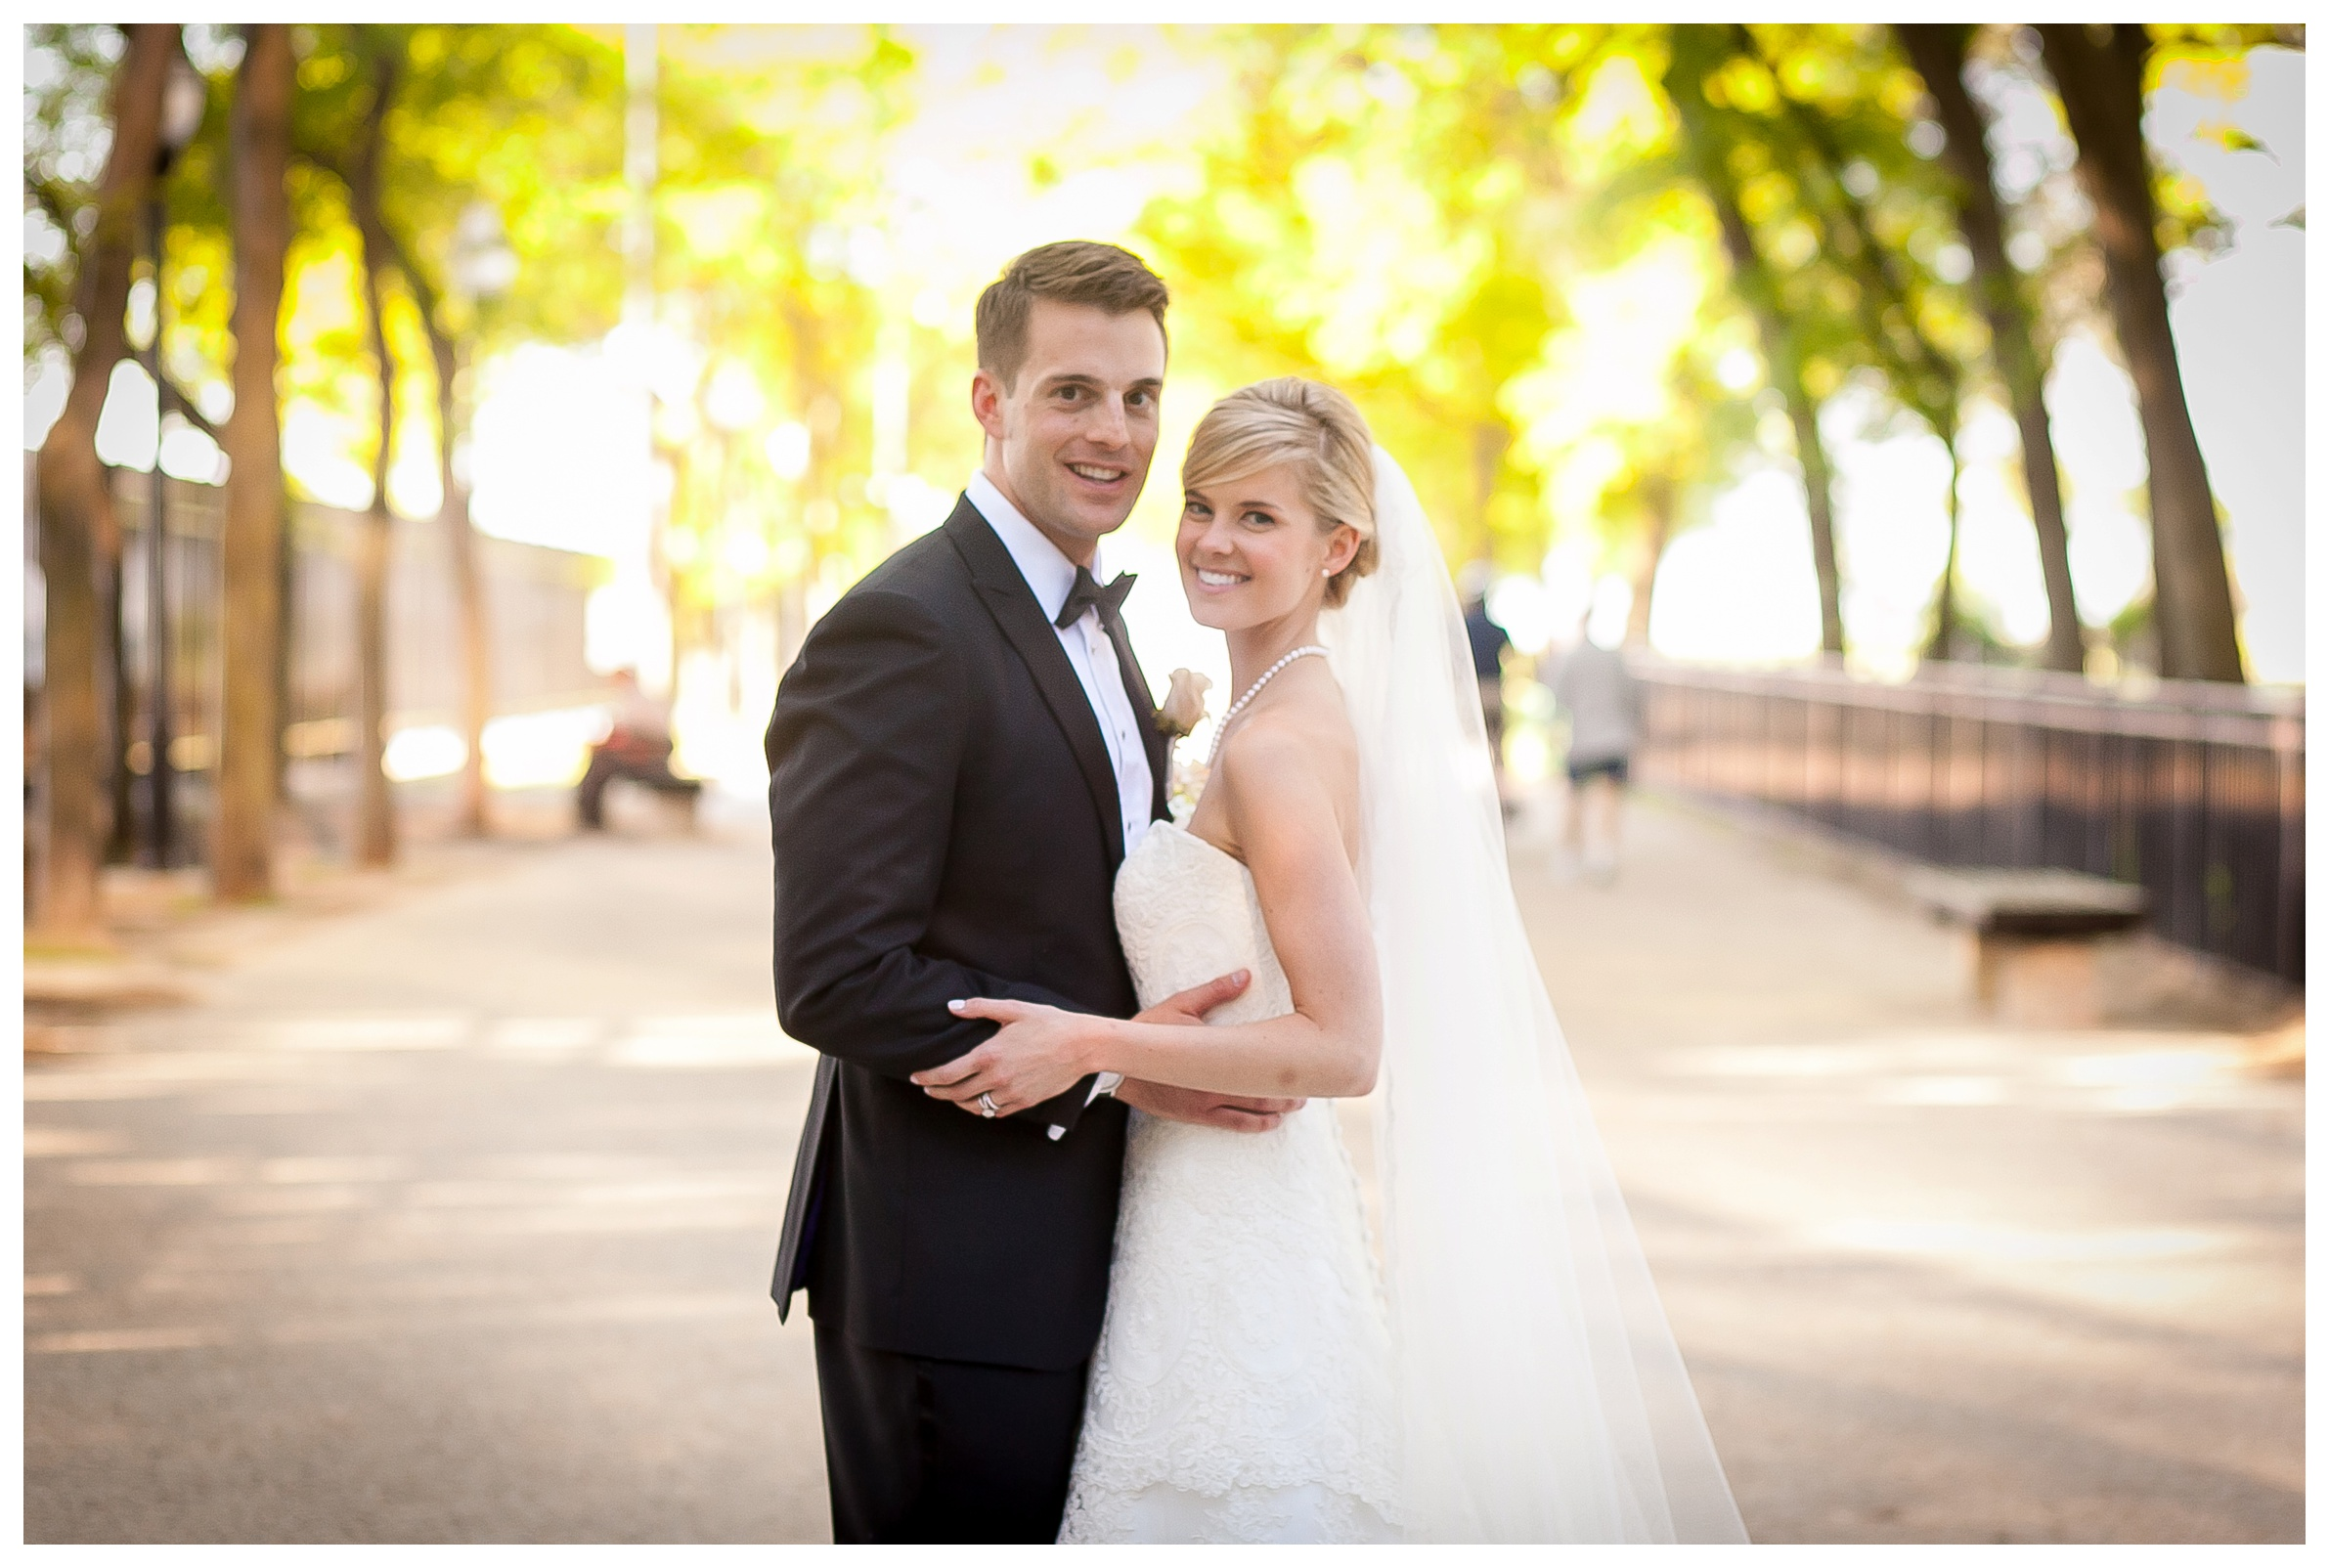 jane-addams-park-chicago-weddings